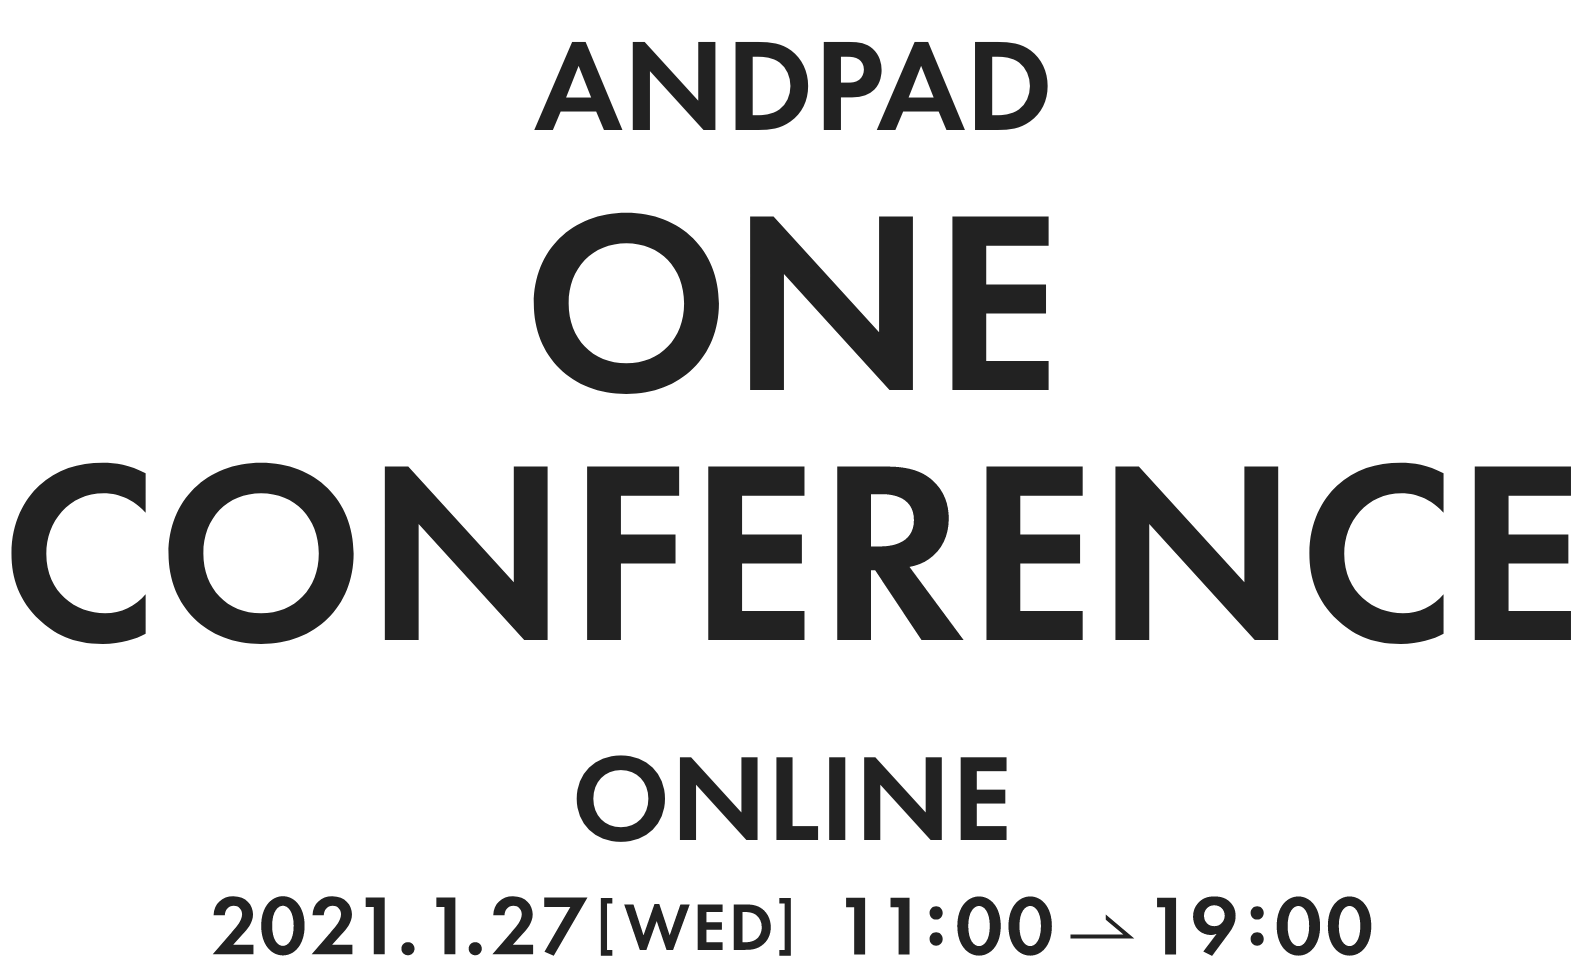 ANDPAD ONE CONFERENCE ONLINE 2021.1.27[WED] 11:00→19:00